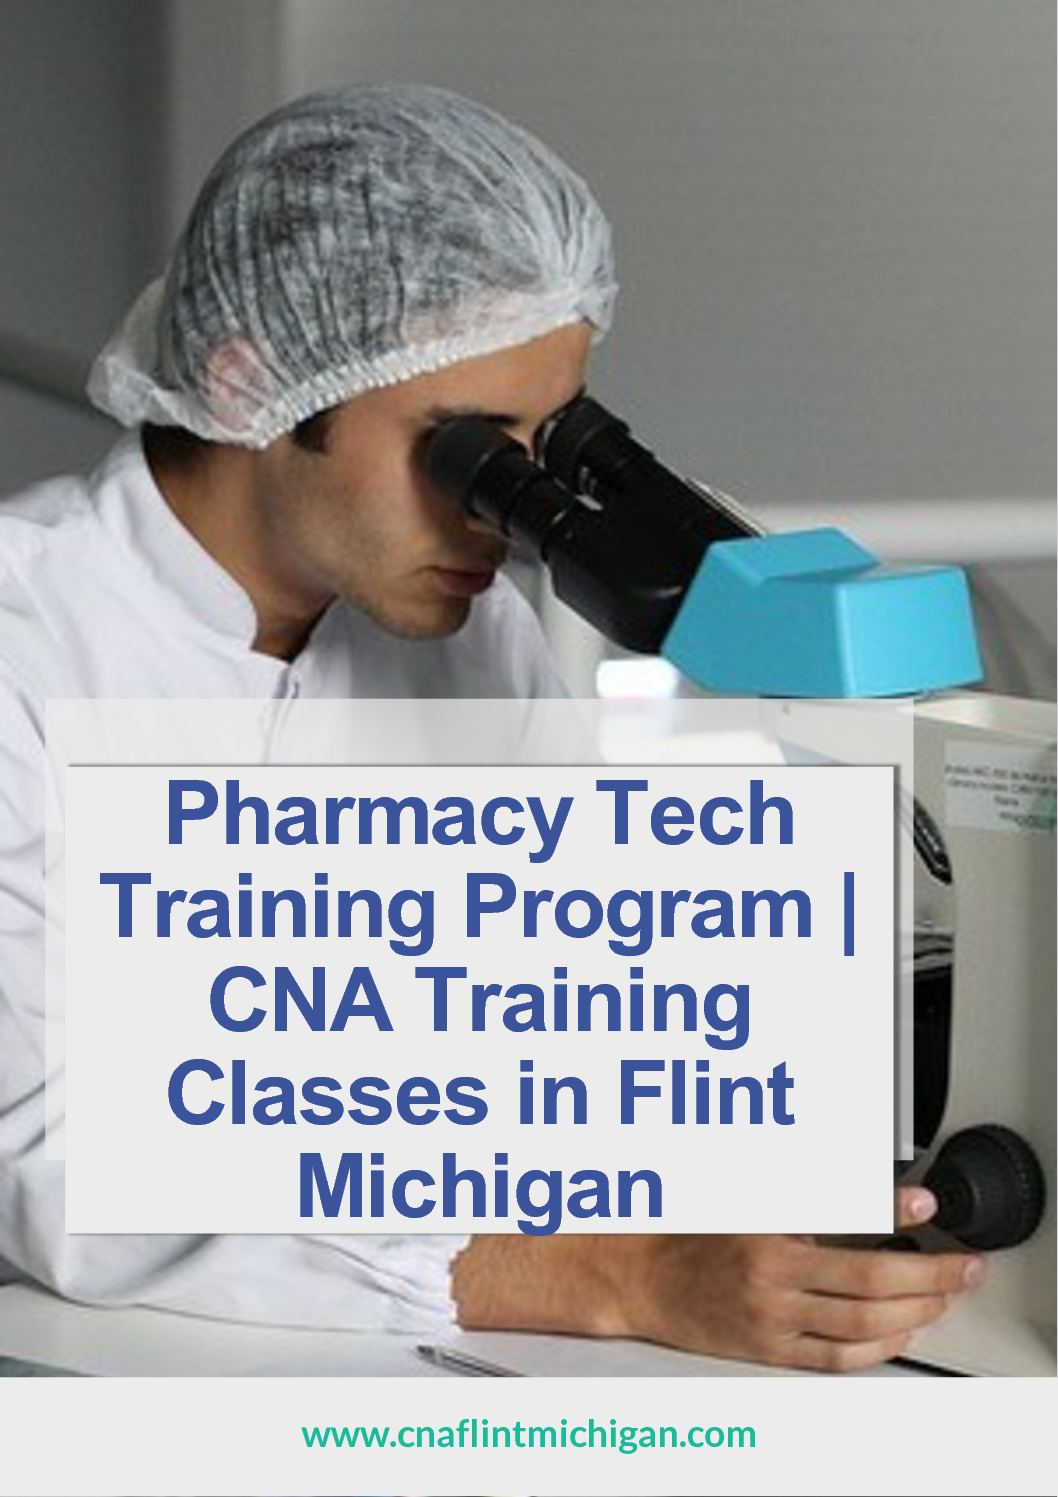 Calamo Pharmacy Tech Training Program Cna Training Classes In